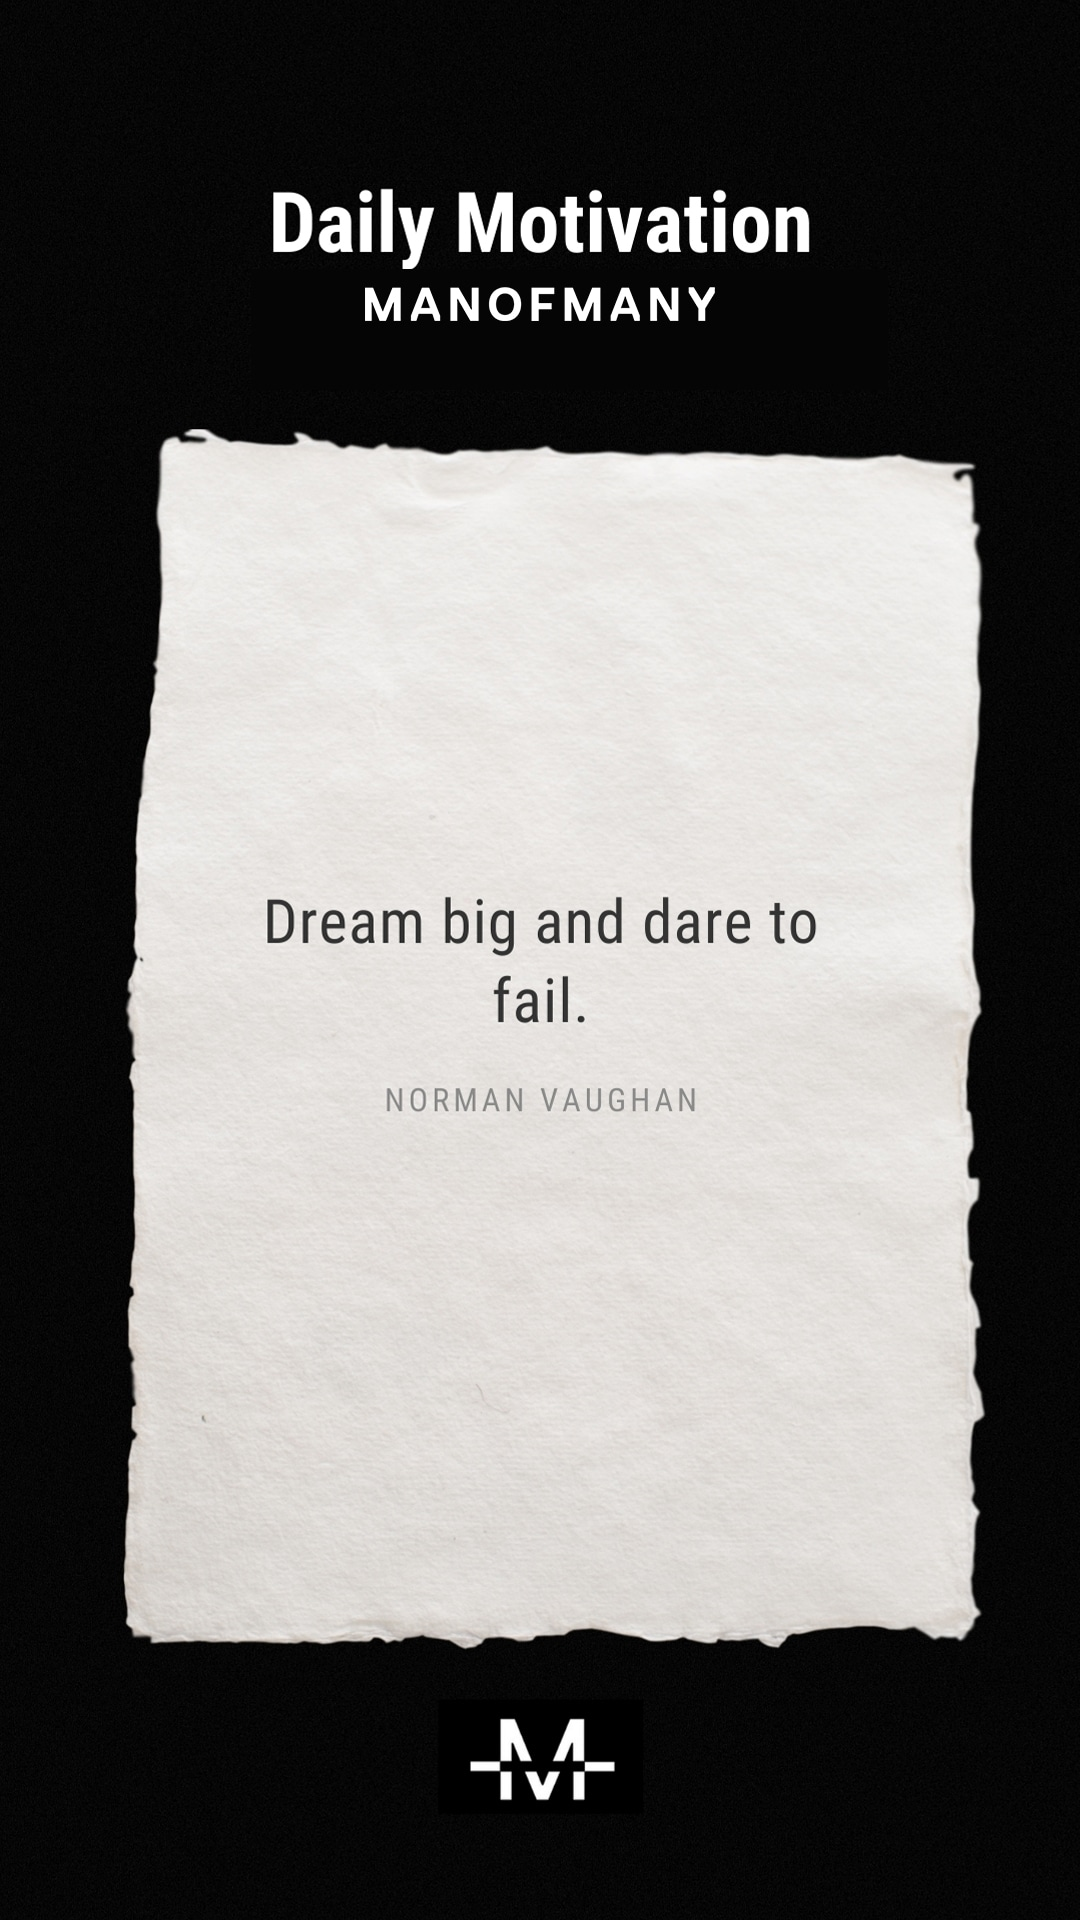 Dream big and dare to fail. –Norman Vaughan quote